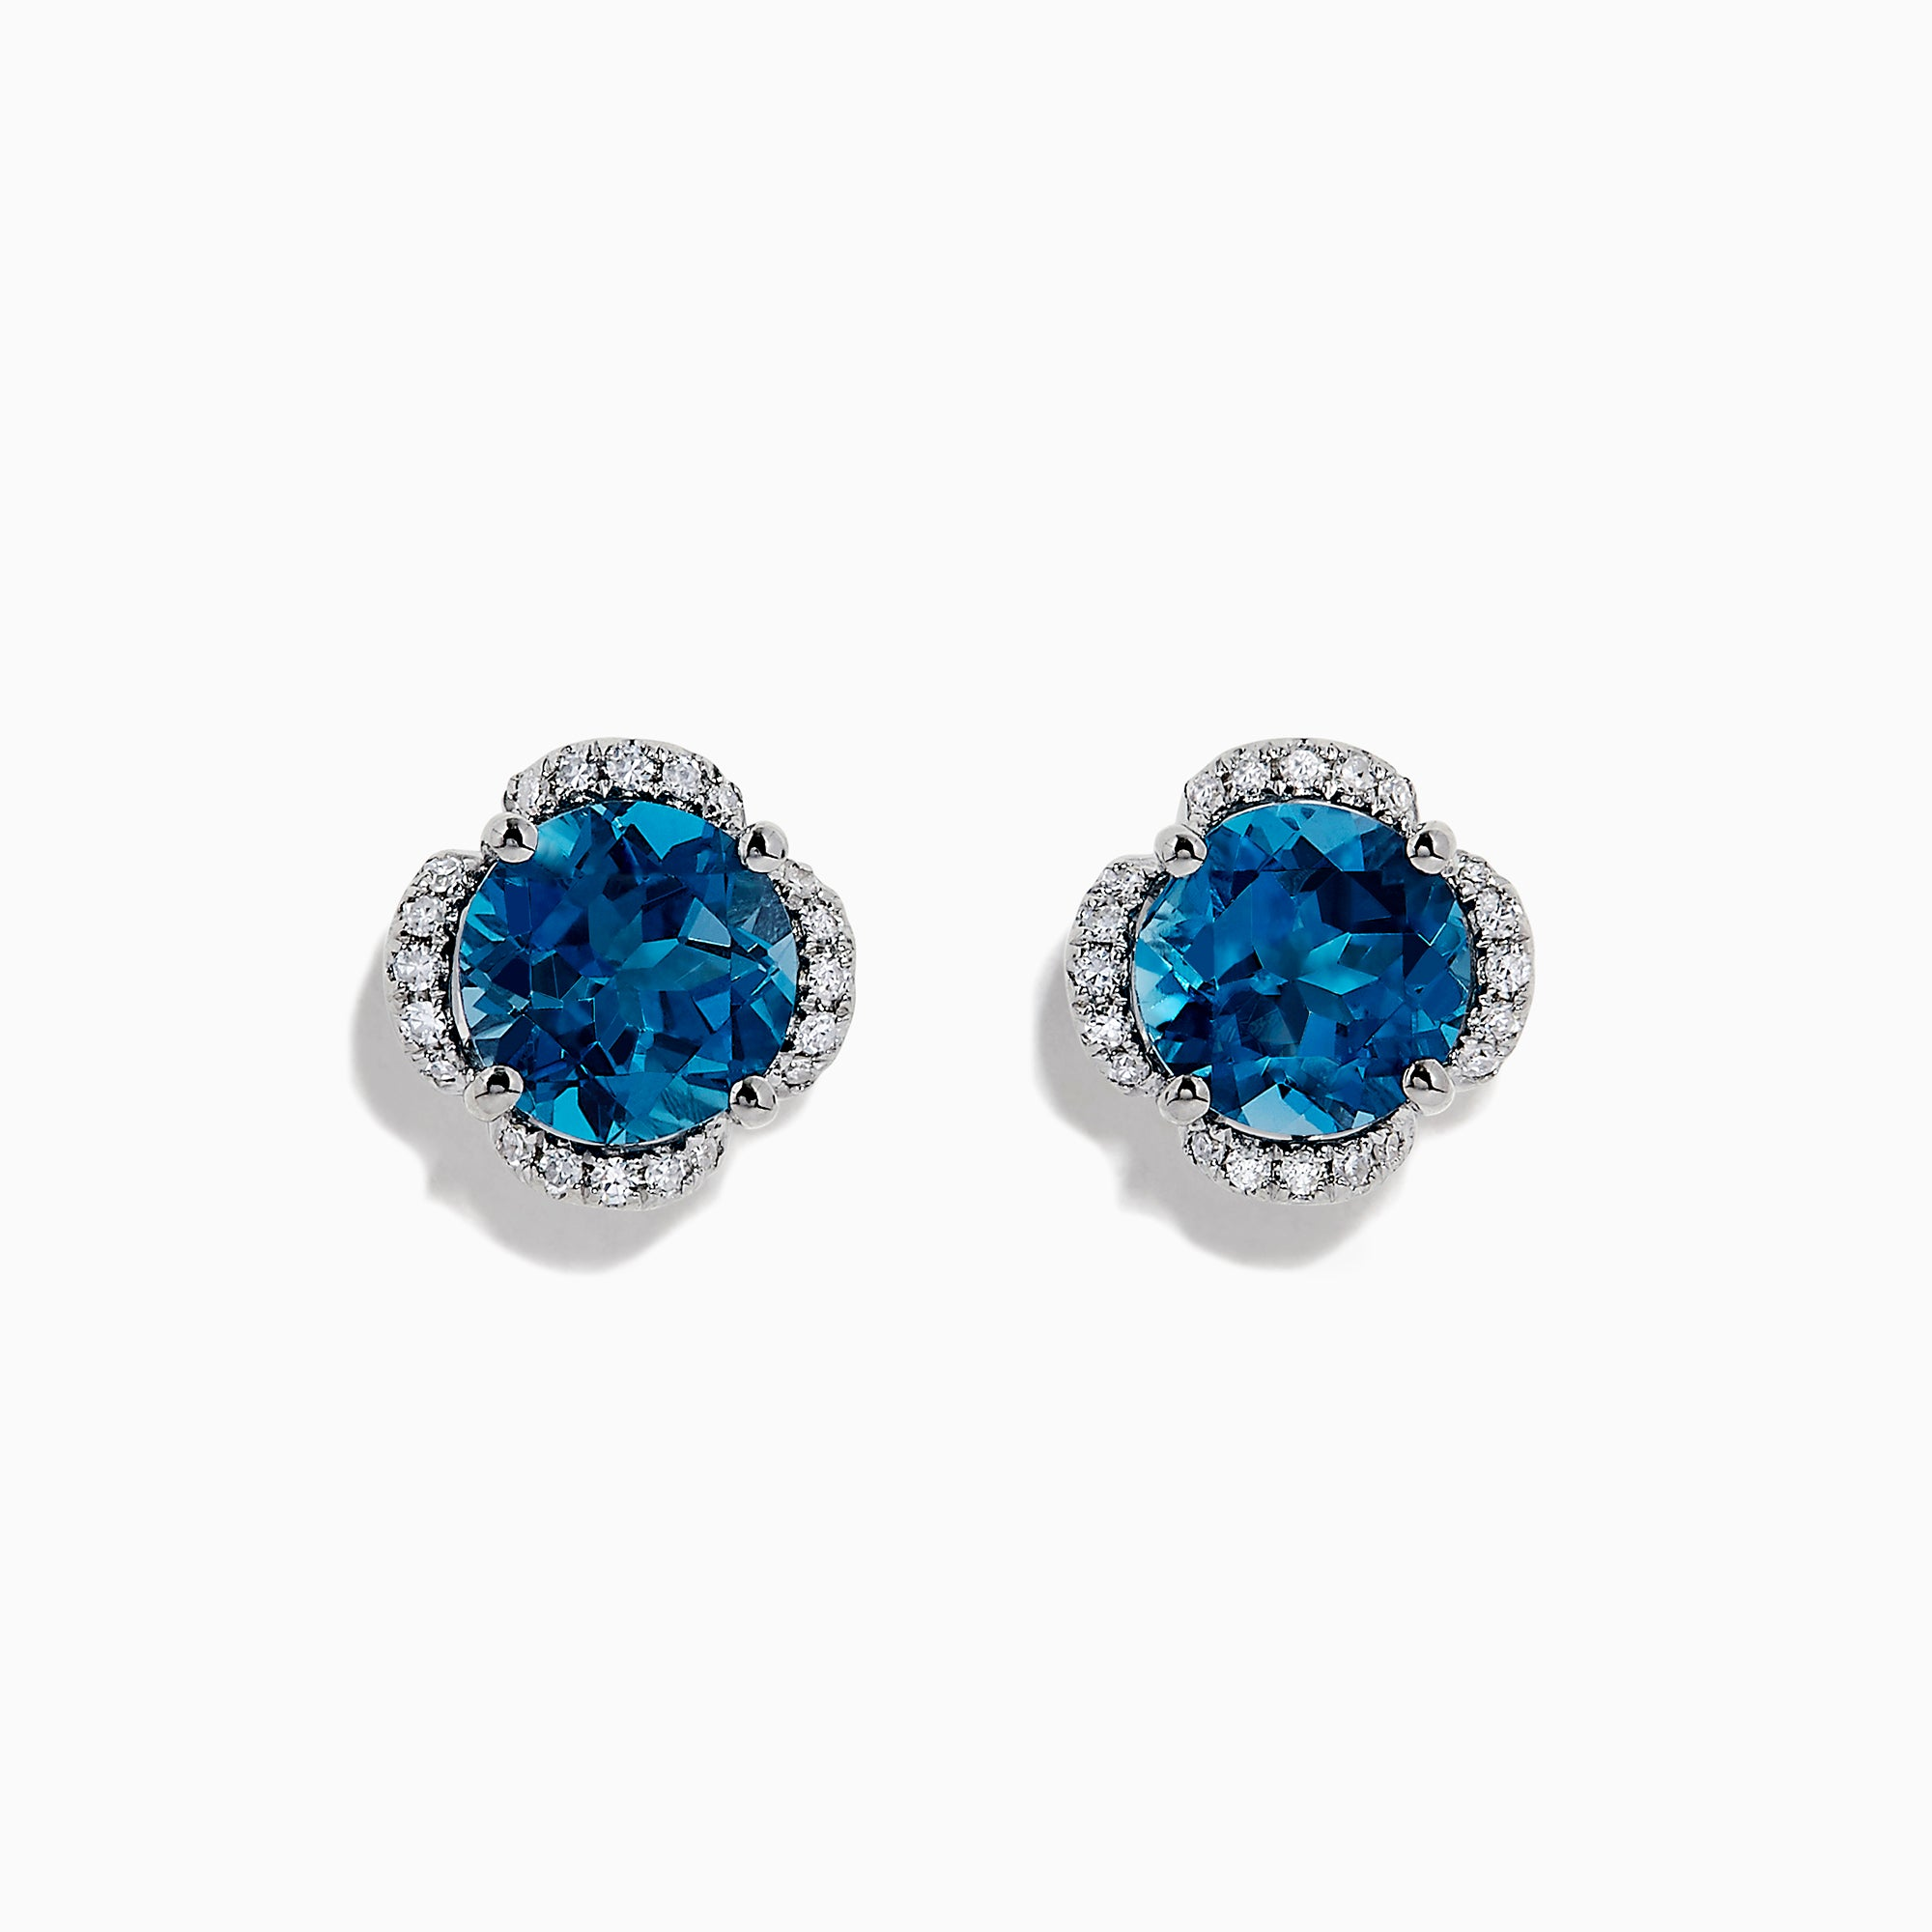 Effy Ocean Bleu 14K Gold London Blue Topaz and Diamond Earrings, 4.25 TCW